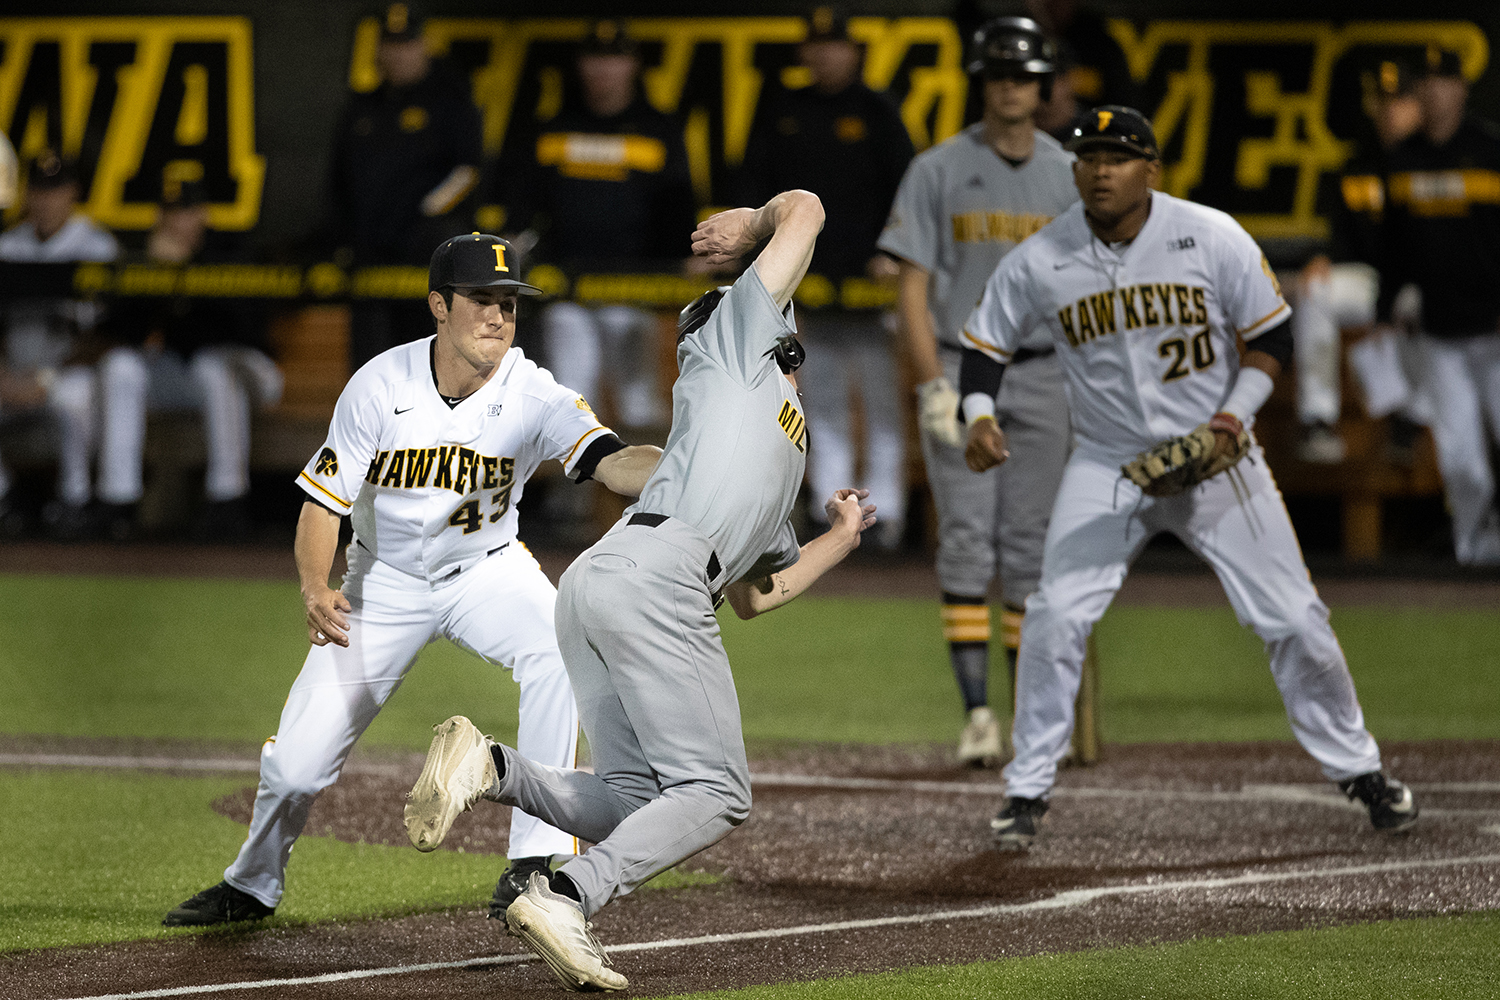 Iowa+pitcher+Grant+Leonard+prevents+a+game+winning+run+during+the+baseball+game+against+Milwaukee+at+Duane+Banks+Field+on+Tuesday%2C+April+23%2C+2019.+The+Hawkeyes+defeated+the+Panthers+5-4.